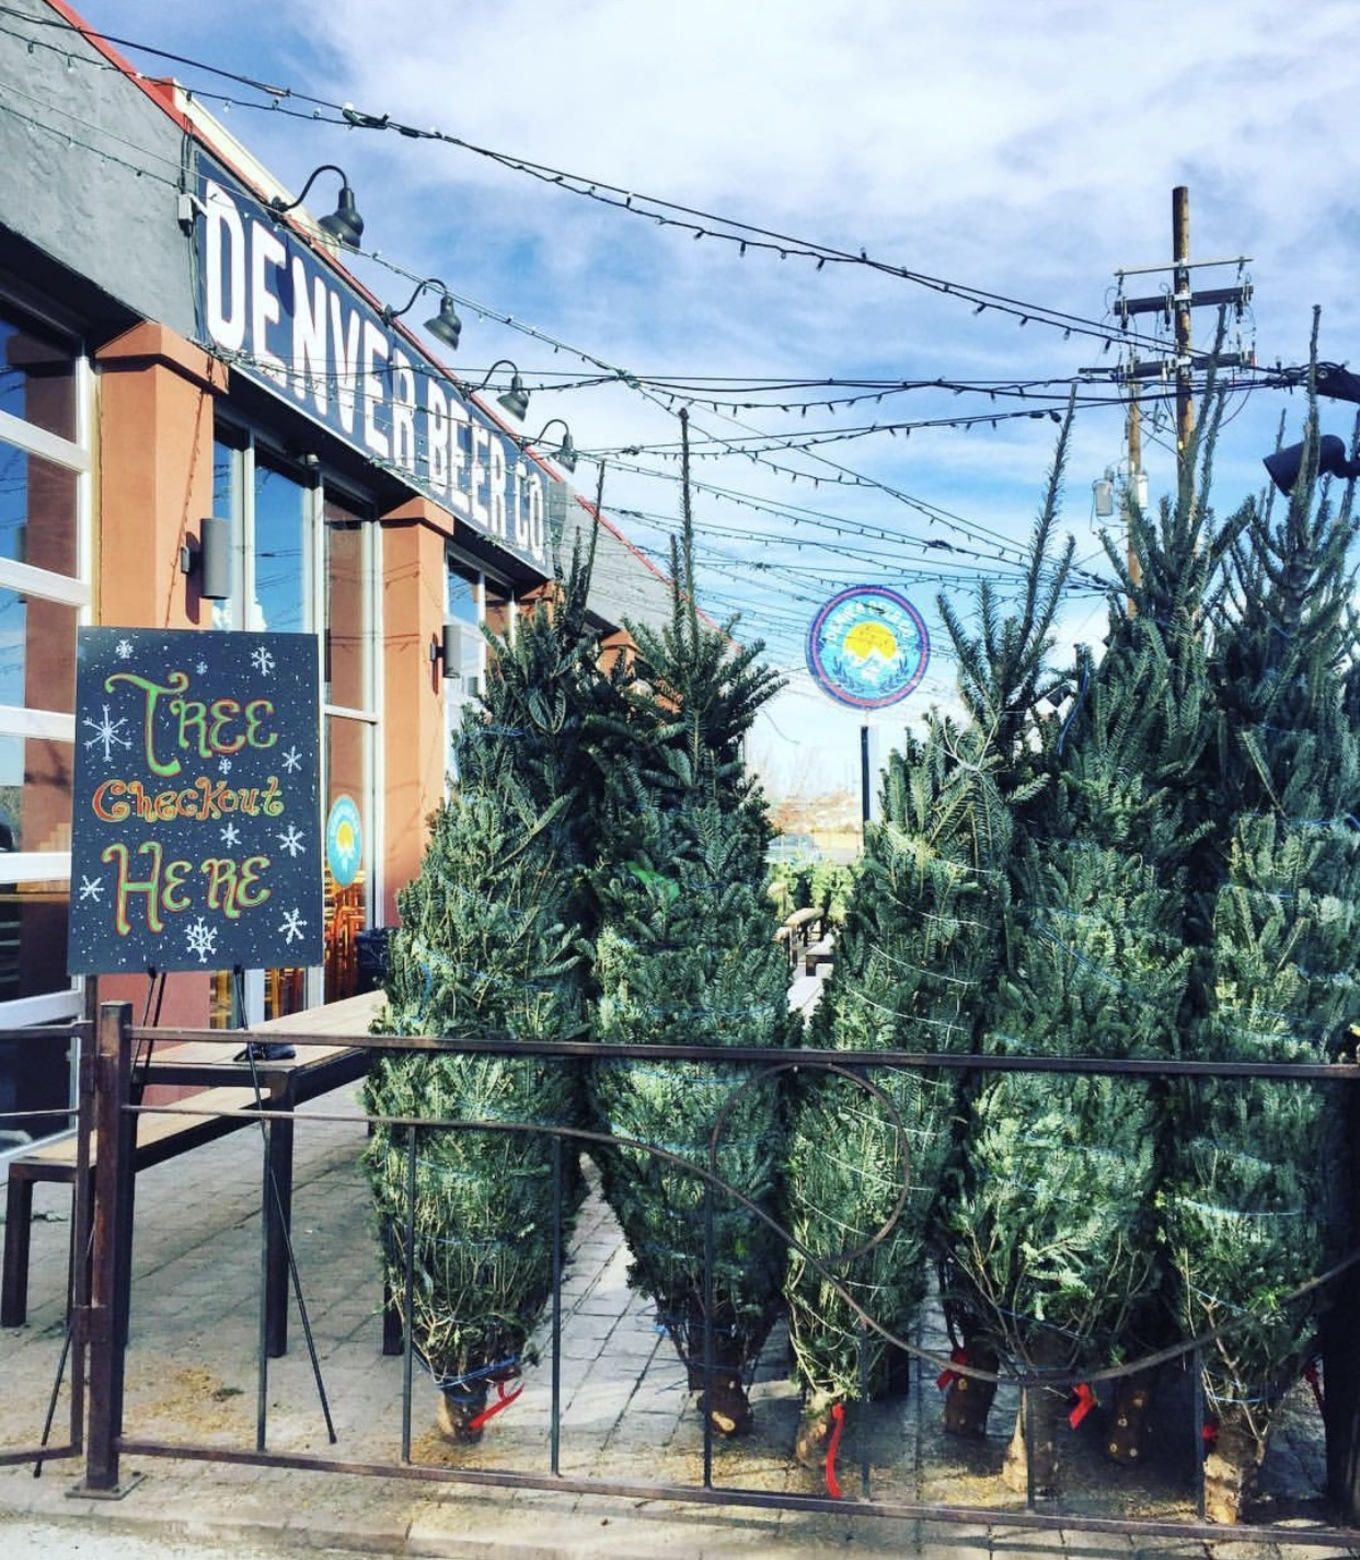 Denver Beer Co S Christmas Tree Farm Both Taprooms